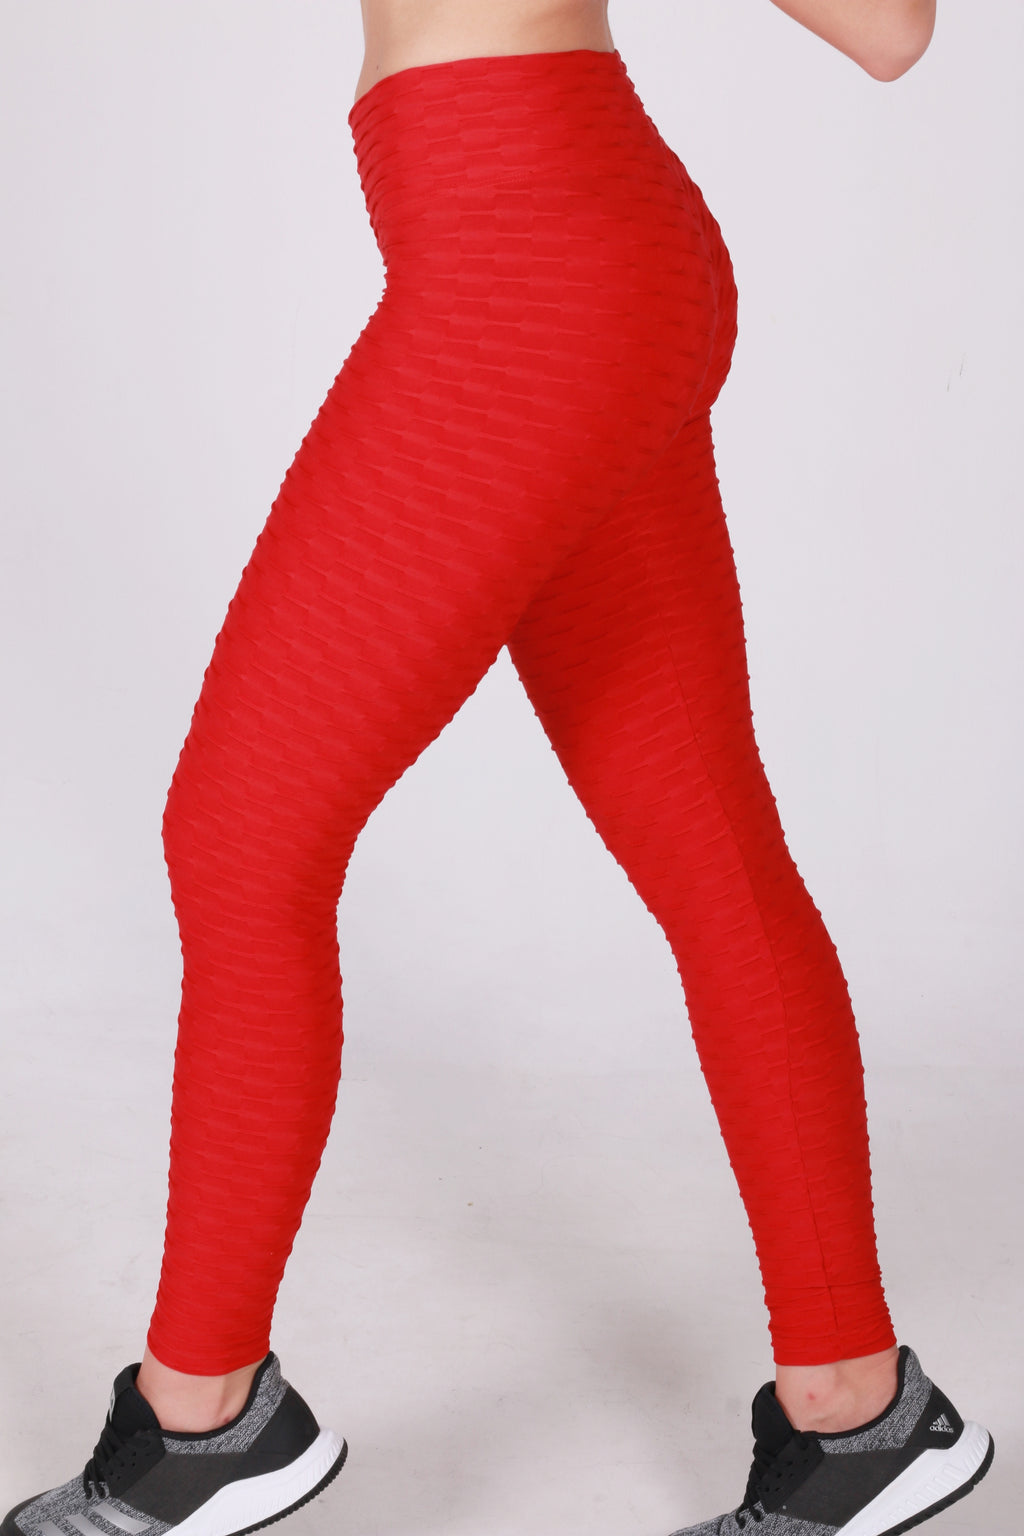 Anti cellulite red legging